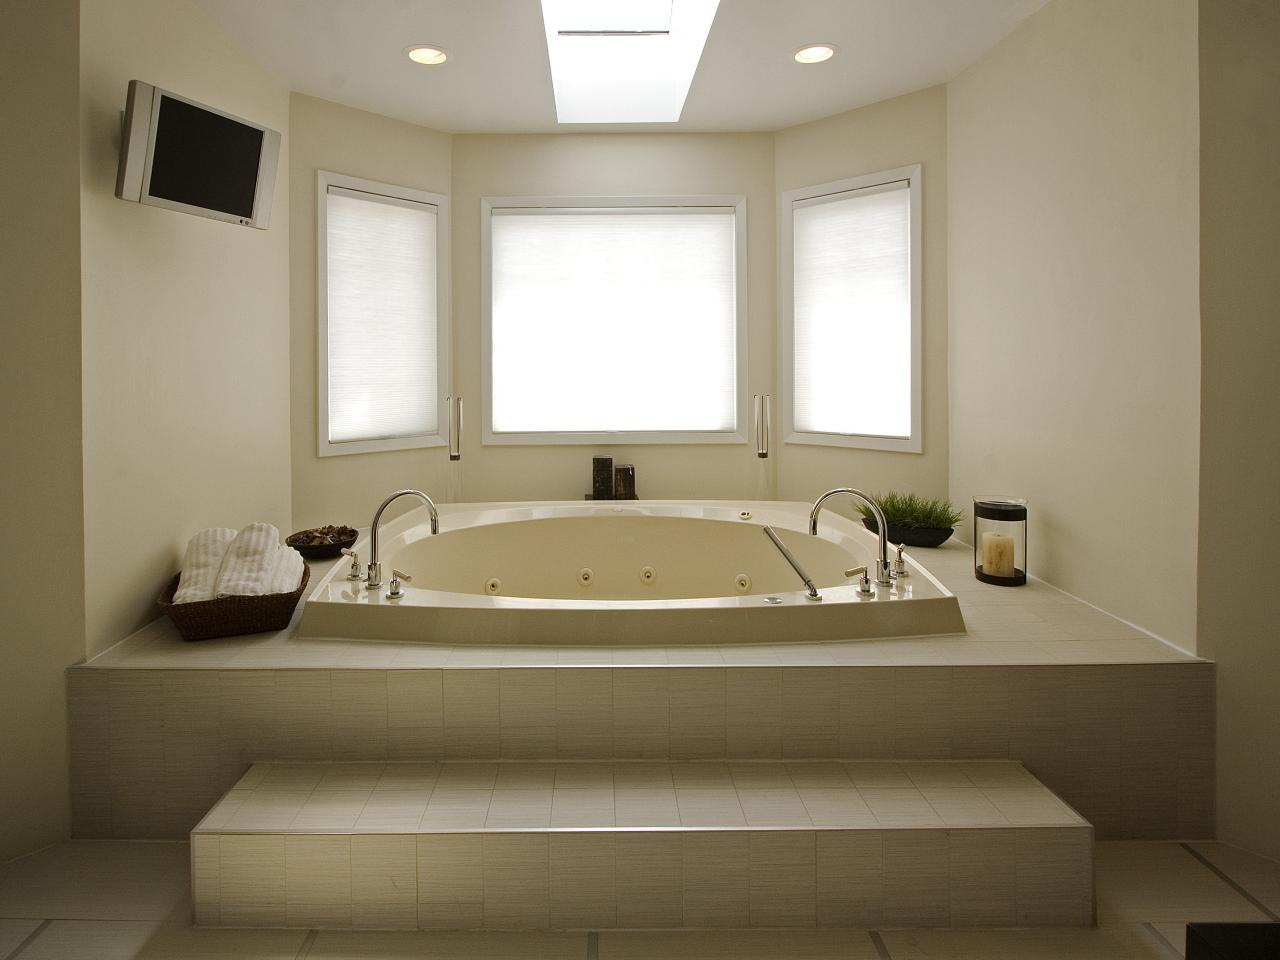 Designer Bathtub modern bathtub designs: pictures, ideas & tips from hgtv | hgtv